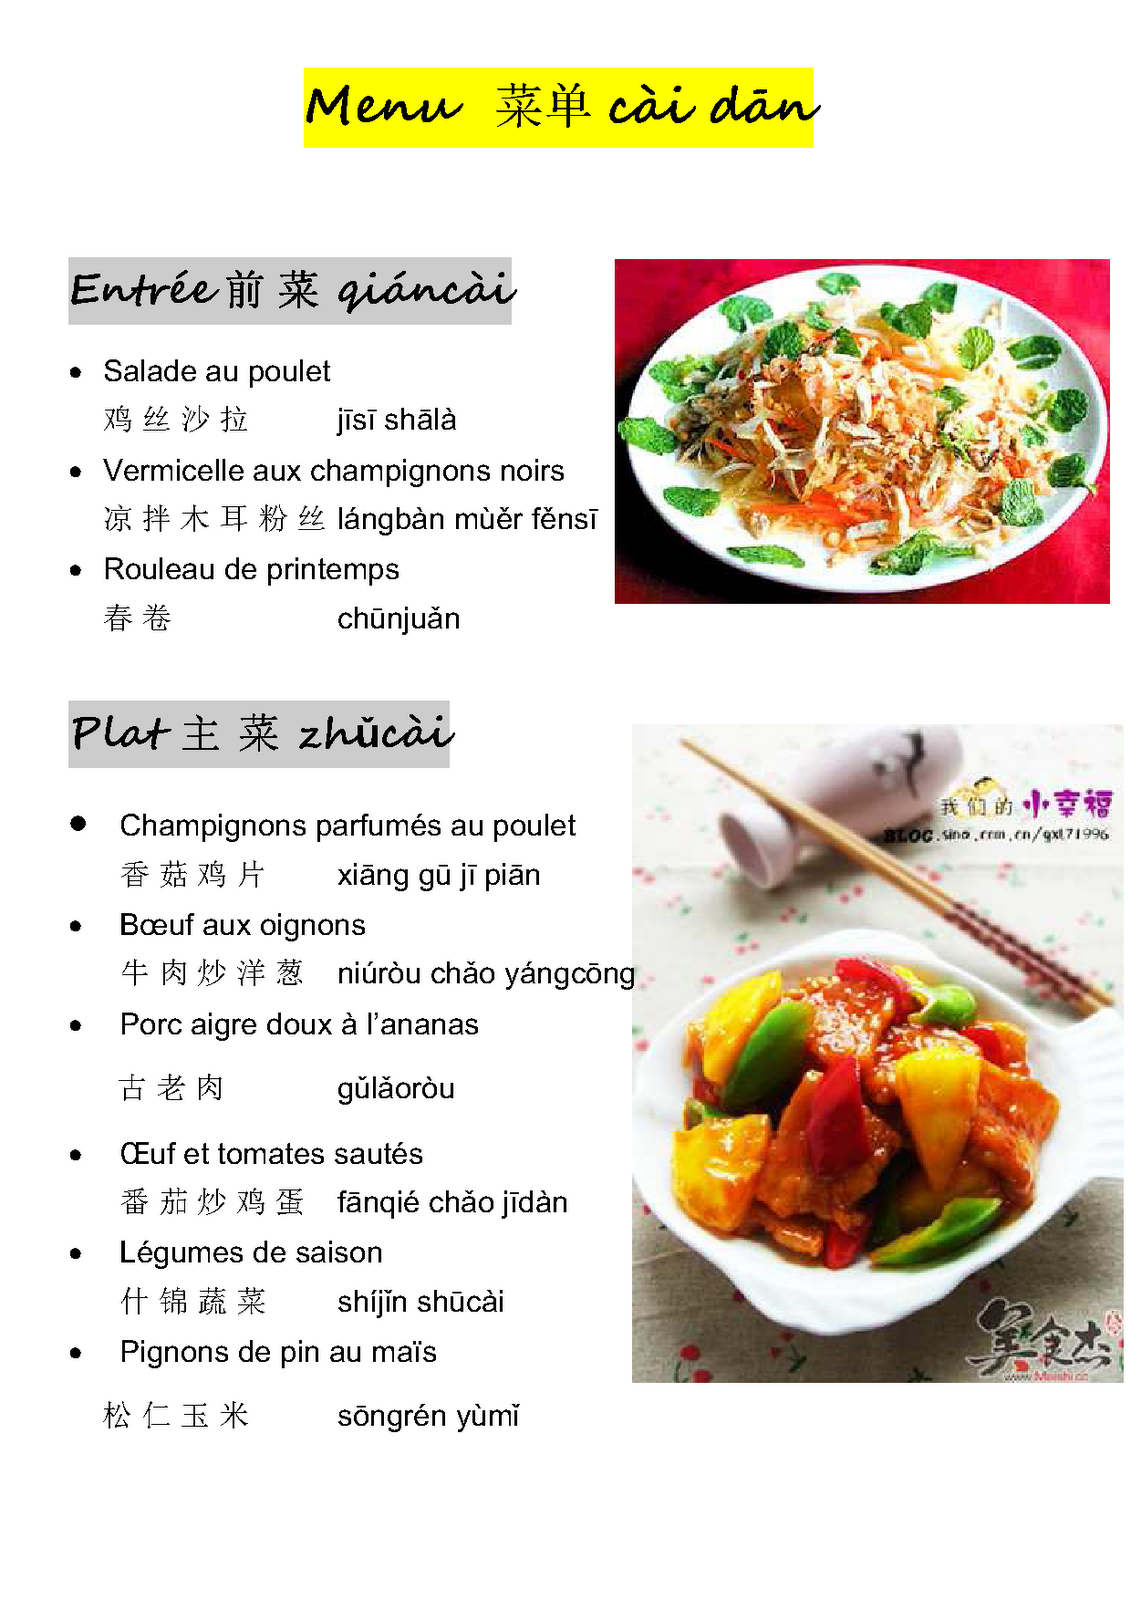 Echanges franco chinois menu chinois e f c for Apprendre cuisine chinoise